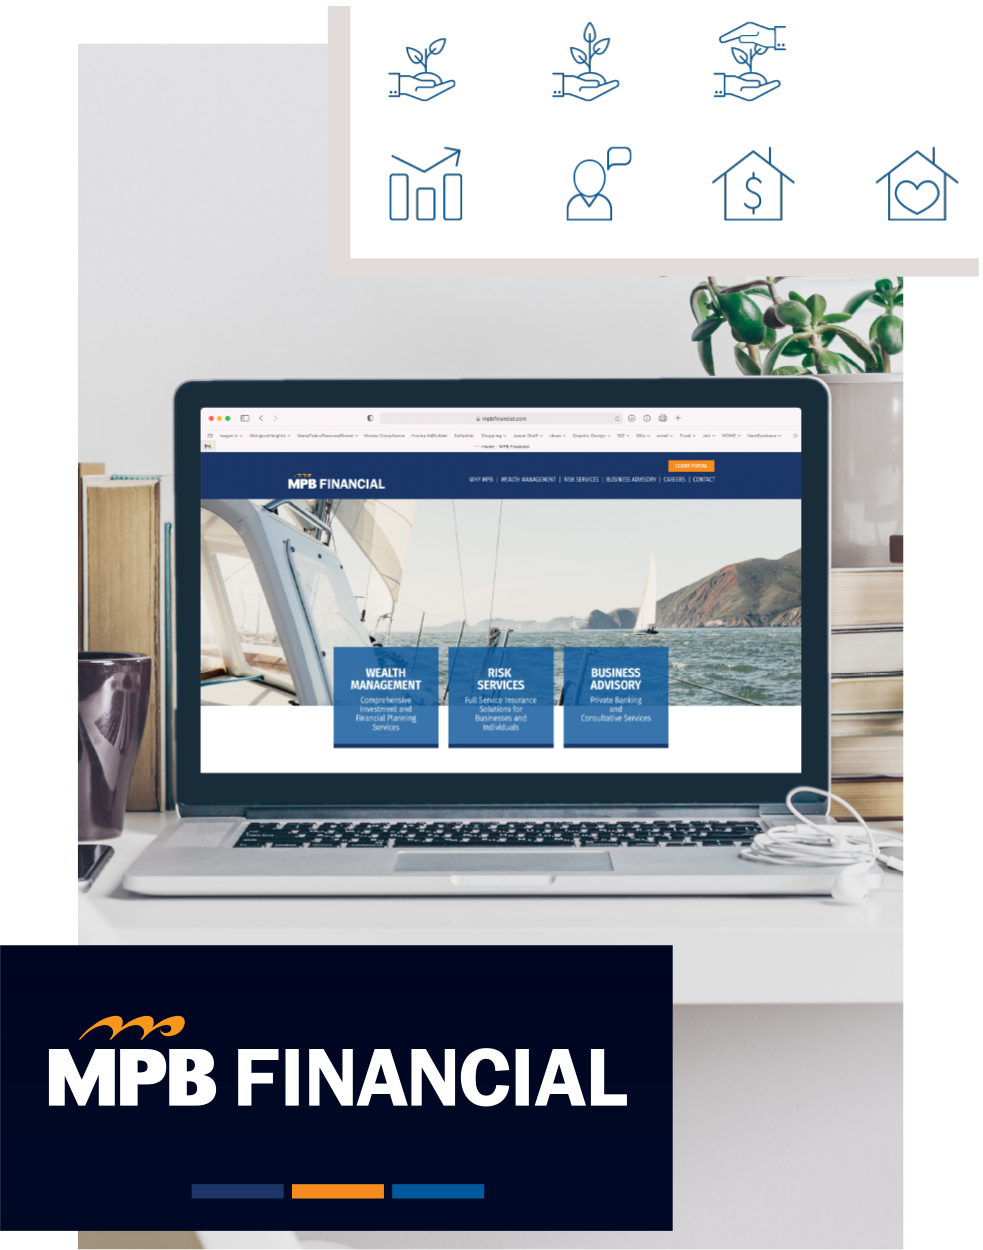 website design and brand icons and logo for MPB Financial